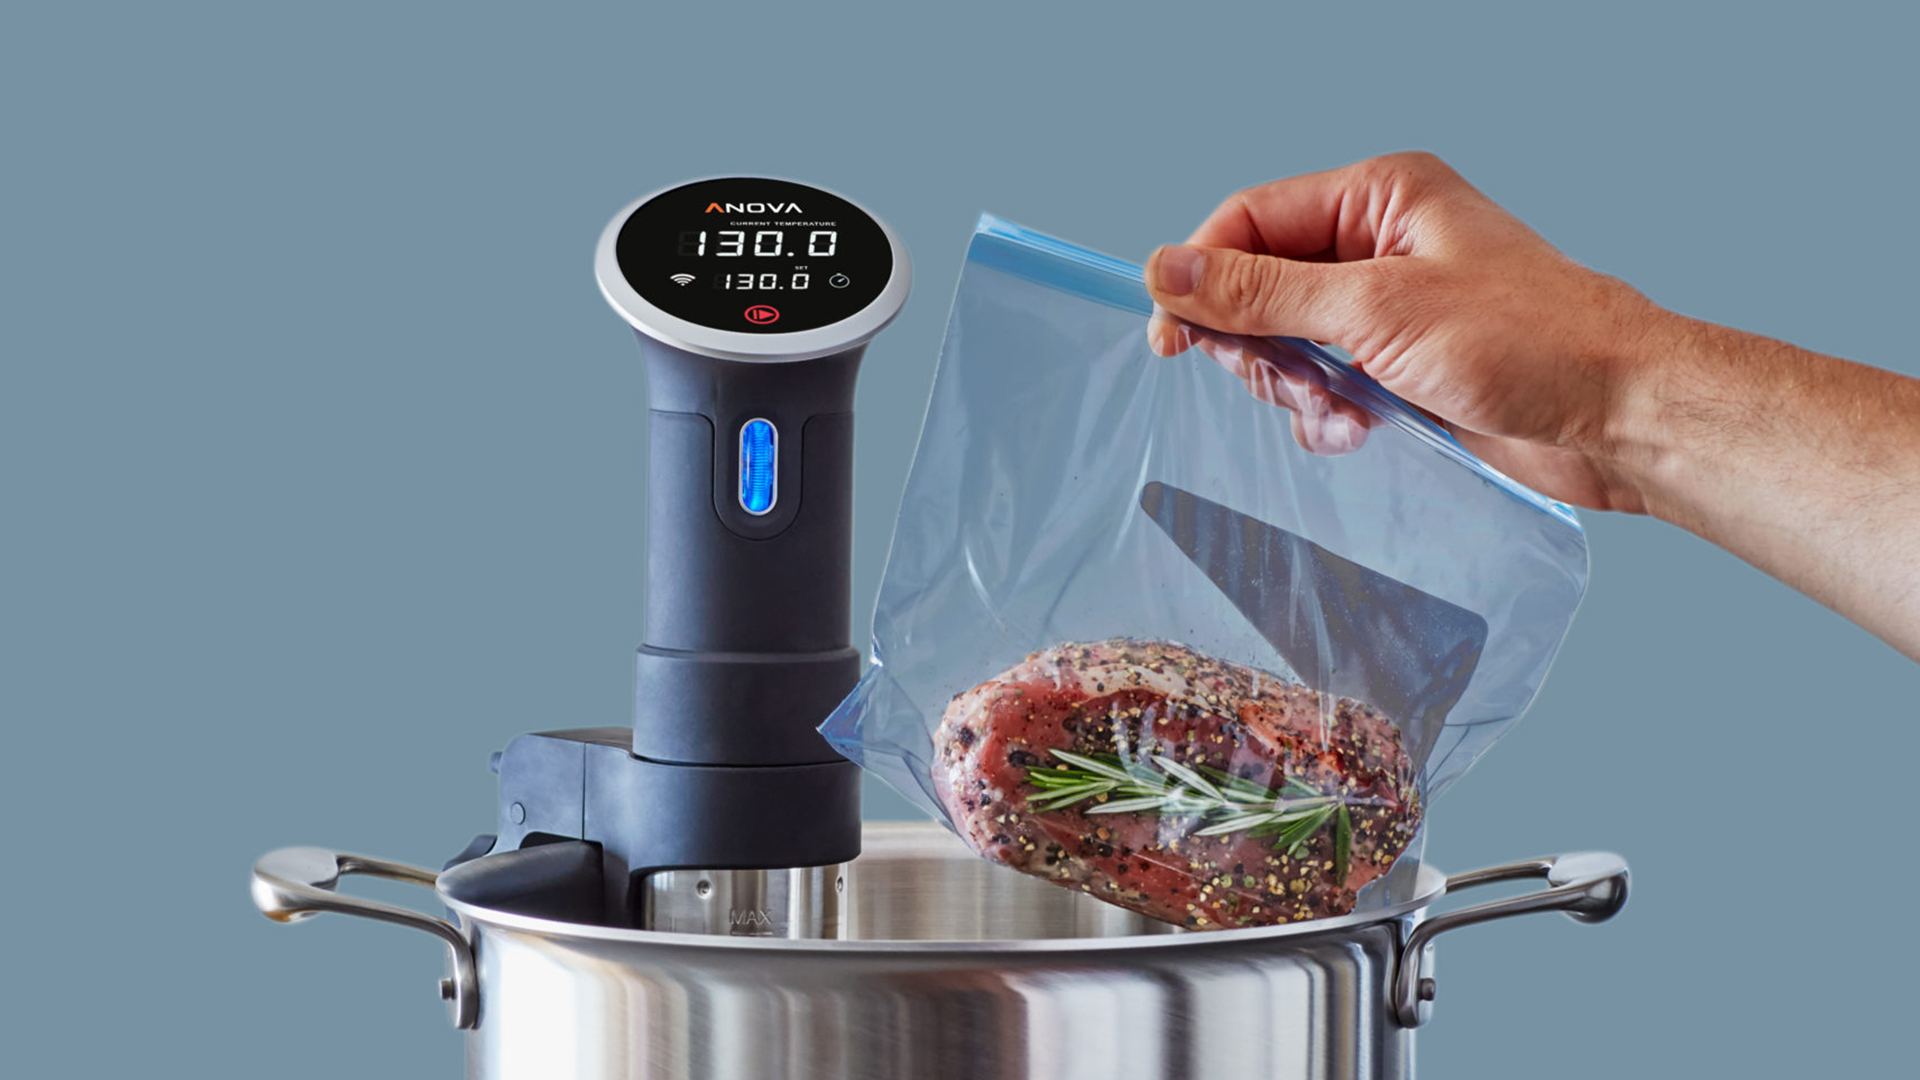 Top 10 Smart Home Gadgets 2019 - Anova Culinary (DigitaleWelt)